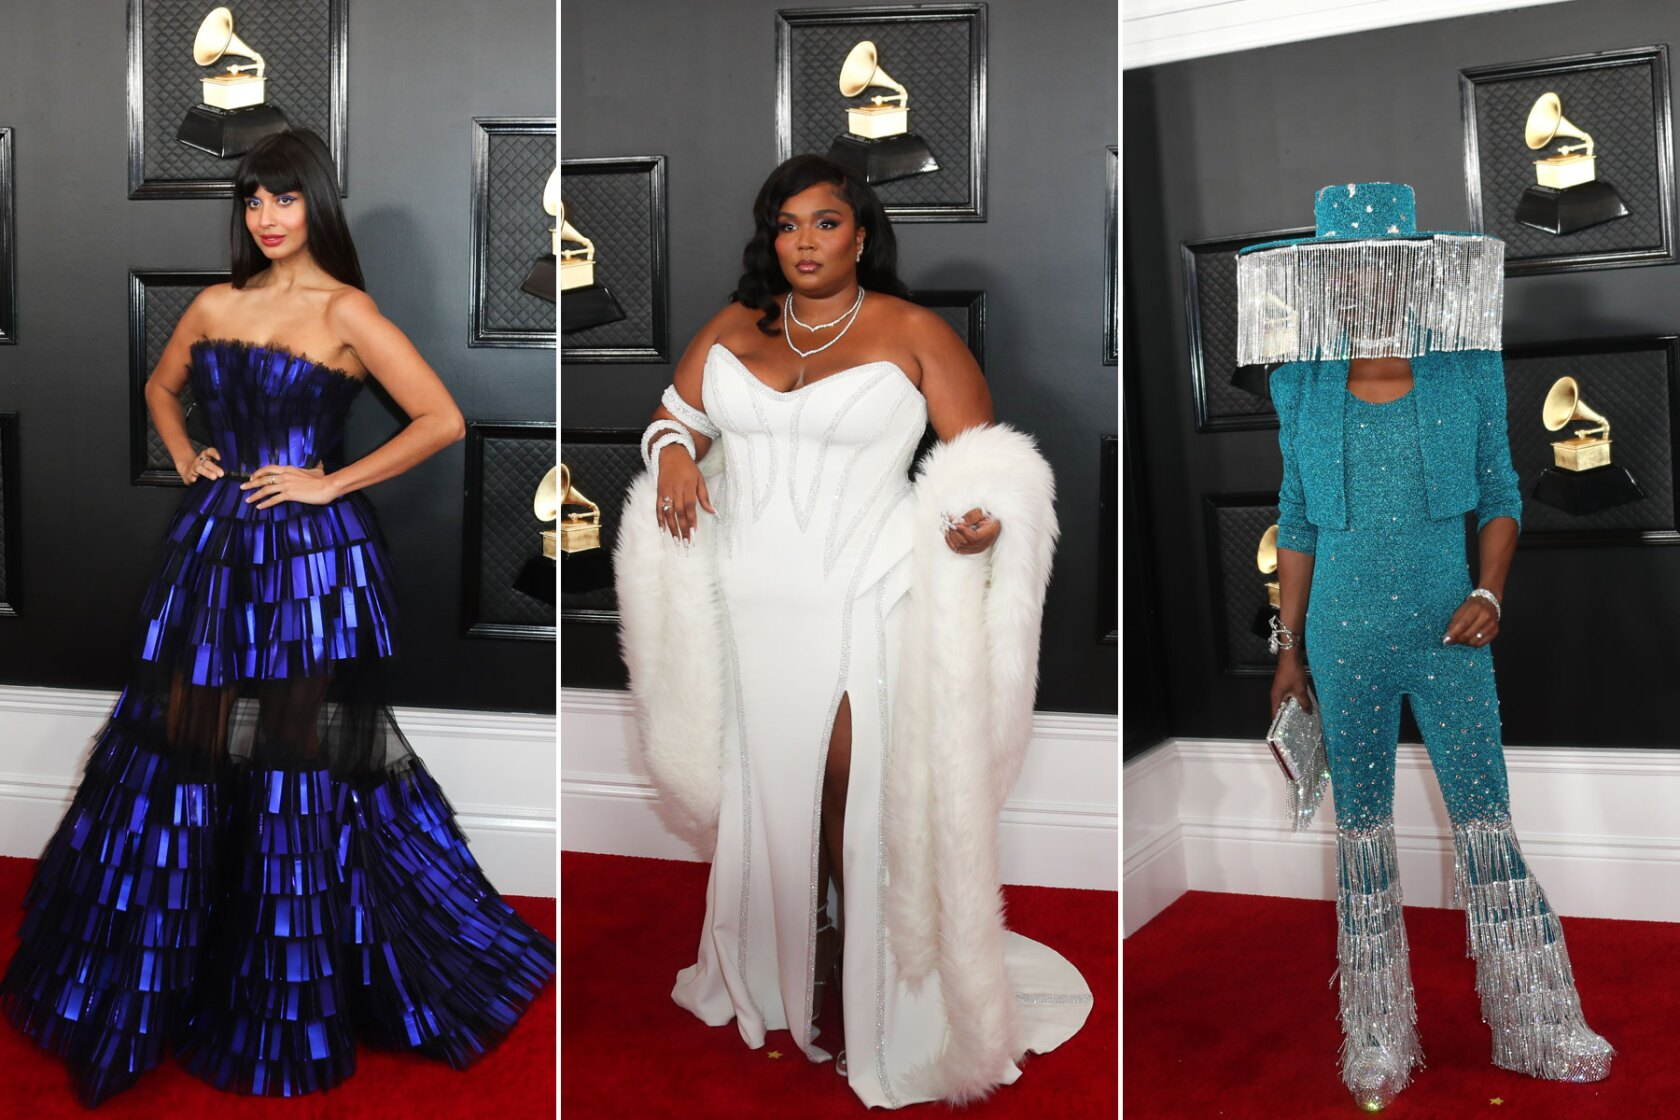 2020 Grammys: Fashion hits and misses from the red carpet - Los Angeles Times